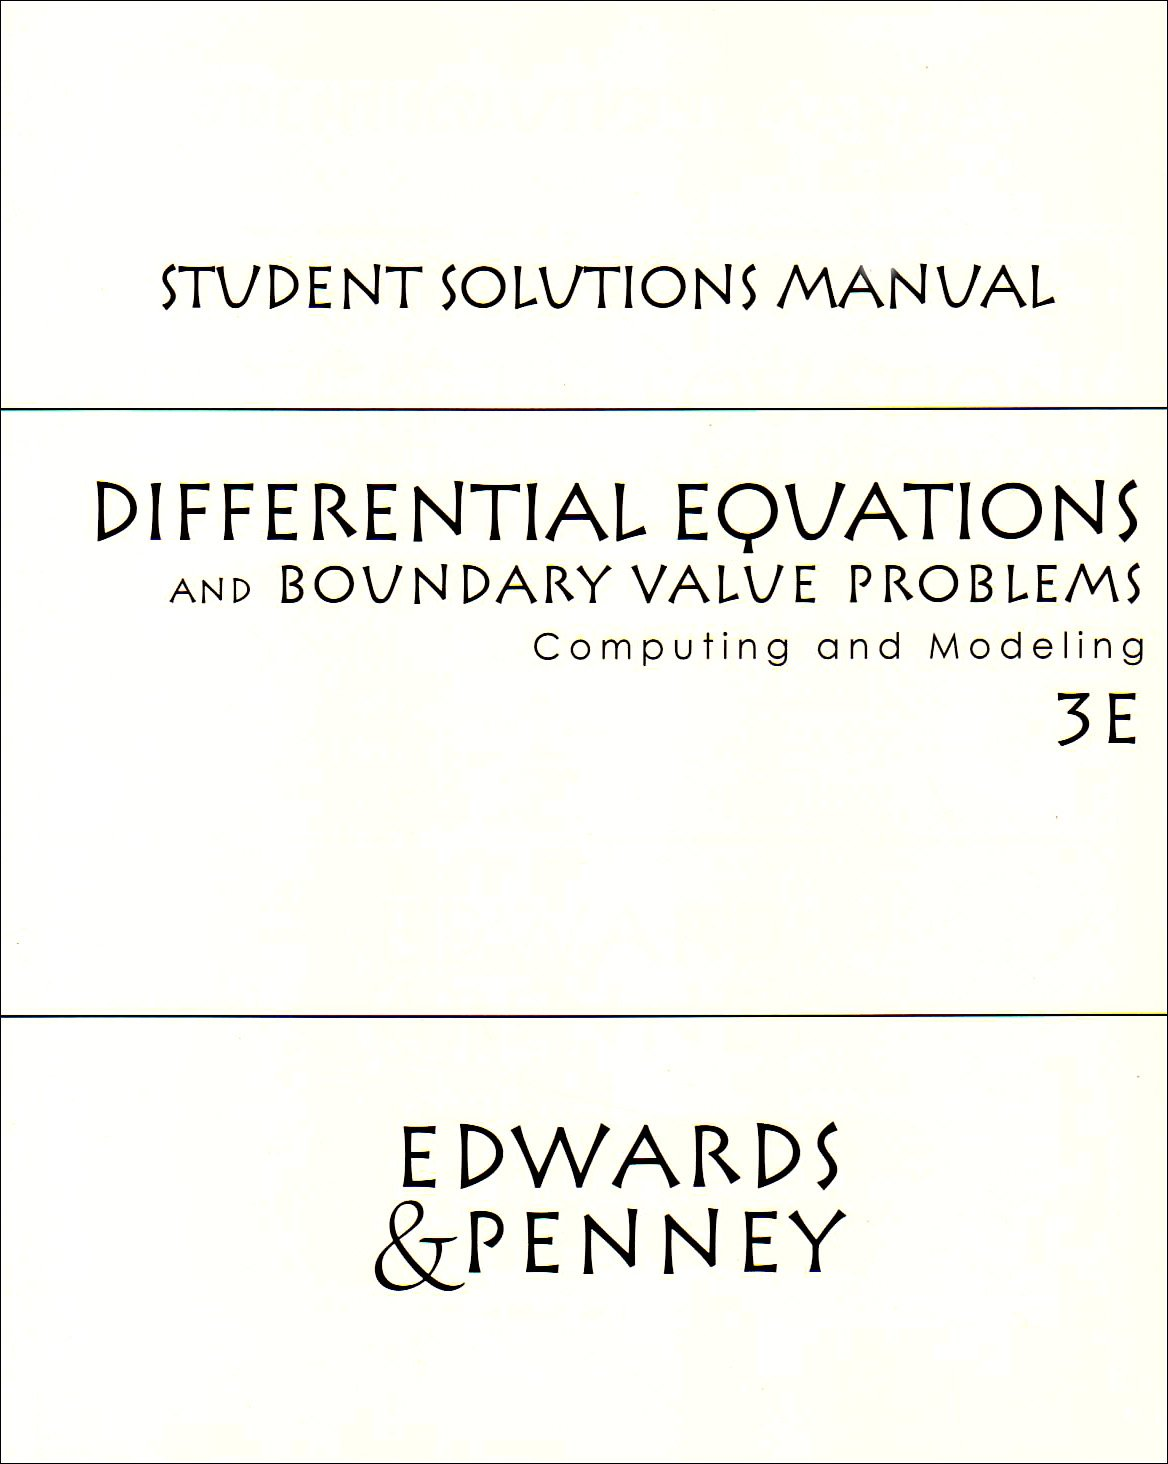 Student Solutions Manual: Amazon.co.uk: C. Henry Edwards, David E. Penney:  9780130475794: Books